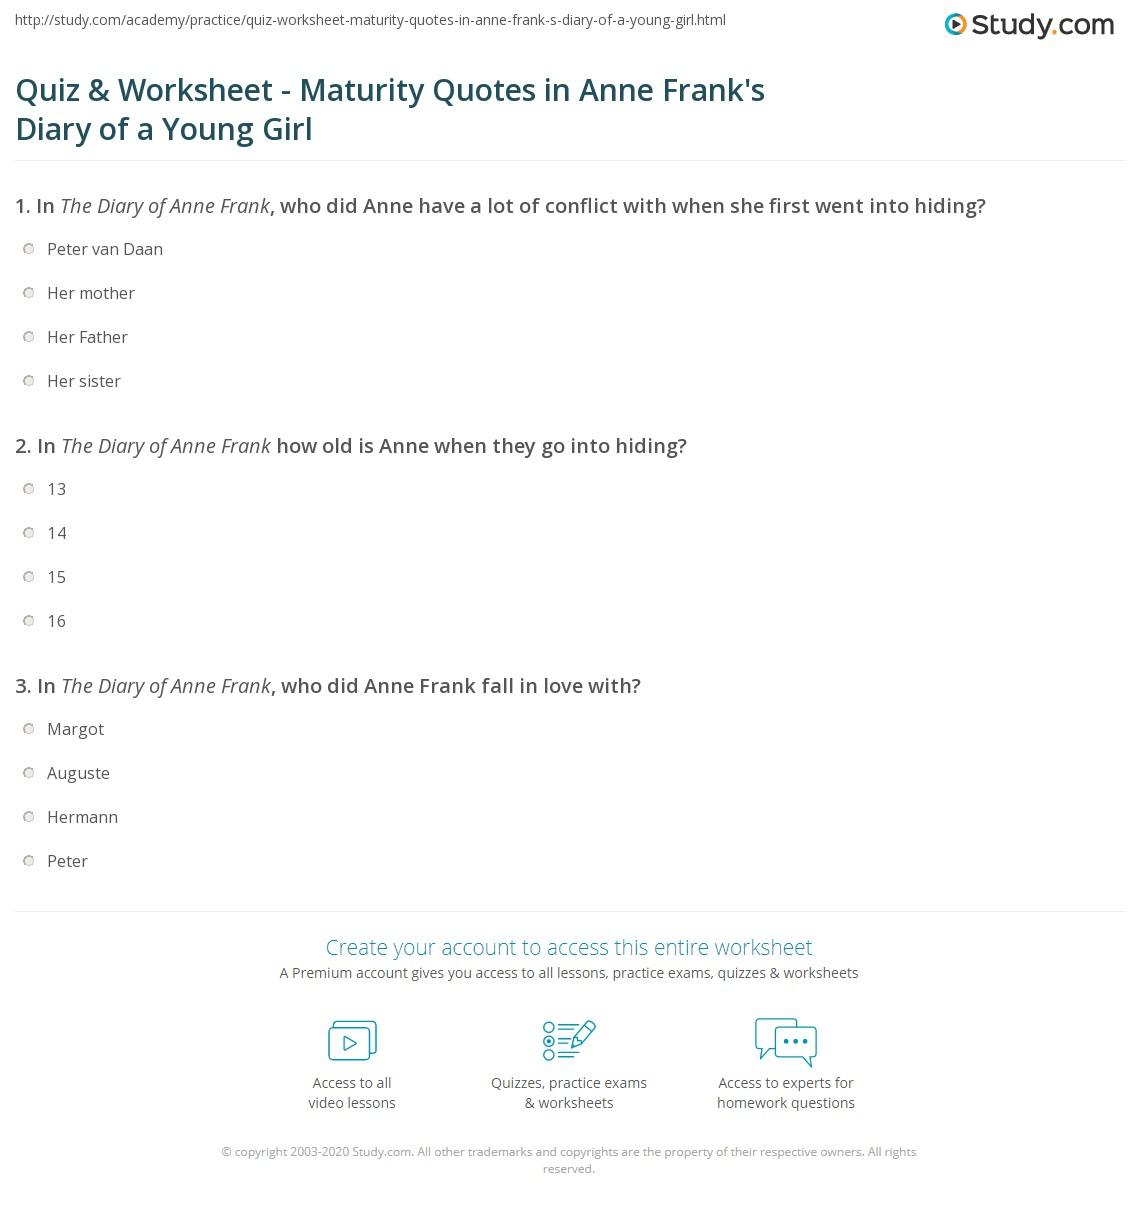 Maturity Quotes Quiz & Worksheet  Maturity Quotes In Anne Frank's Diary Of A